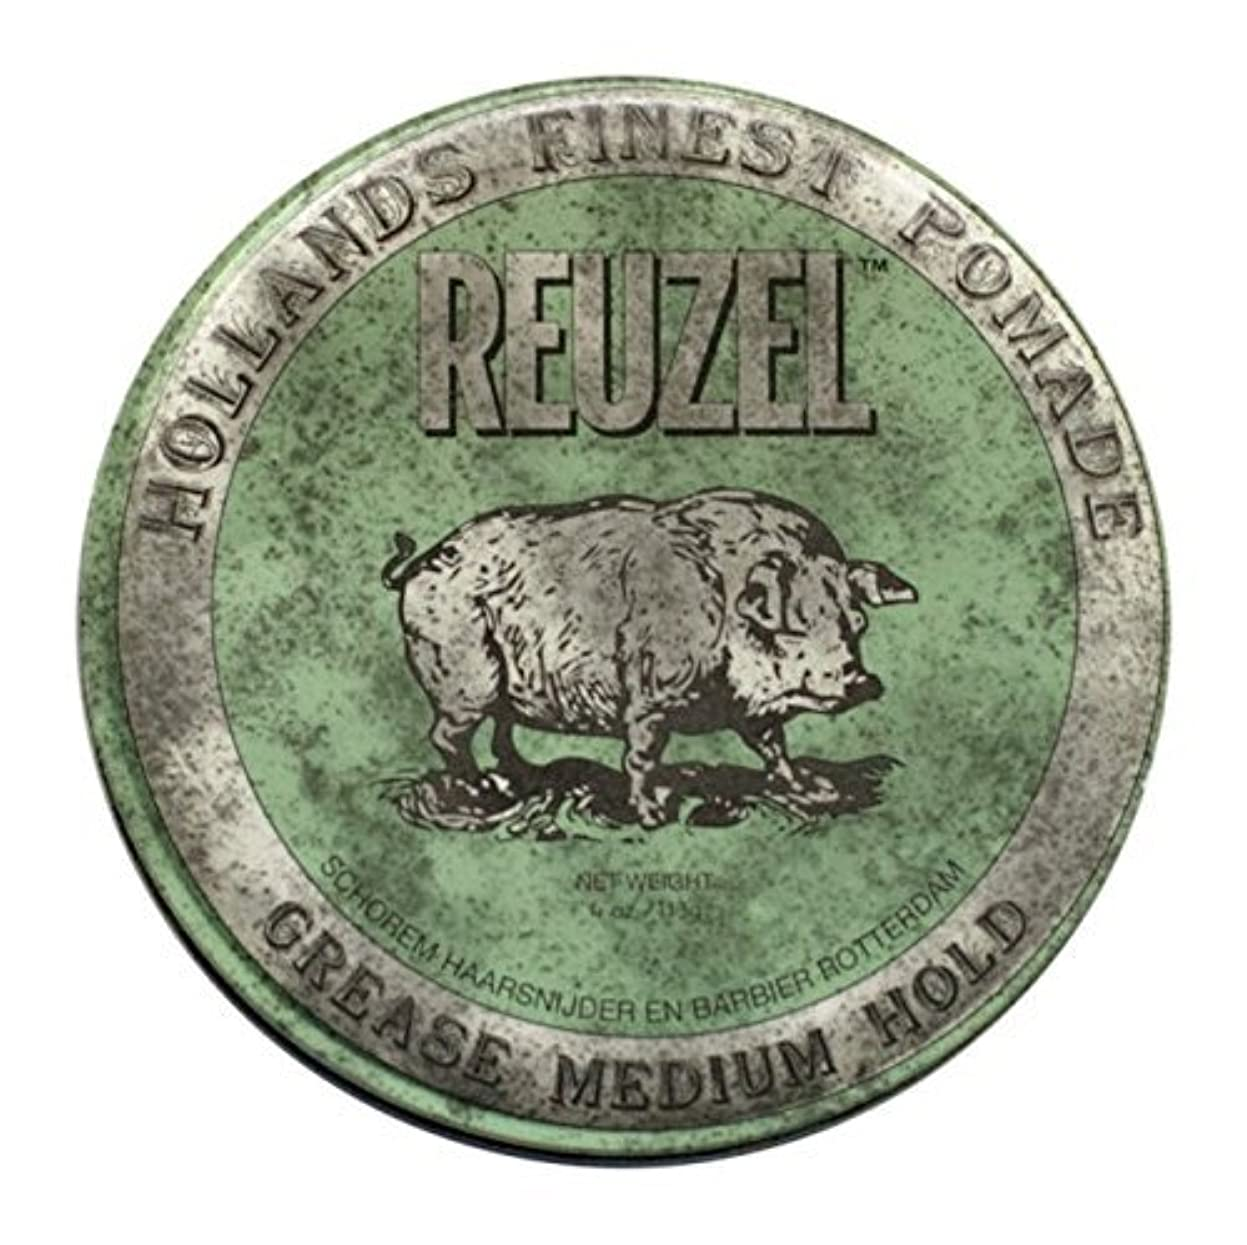 アライメント拍手する夢中Reuzel Green Grease Medium Hold Hair Styling Pomade Piglet 1.3oz (35g) Wax/Gel by Reuzel